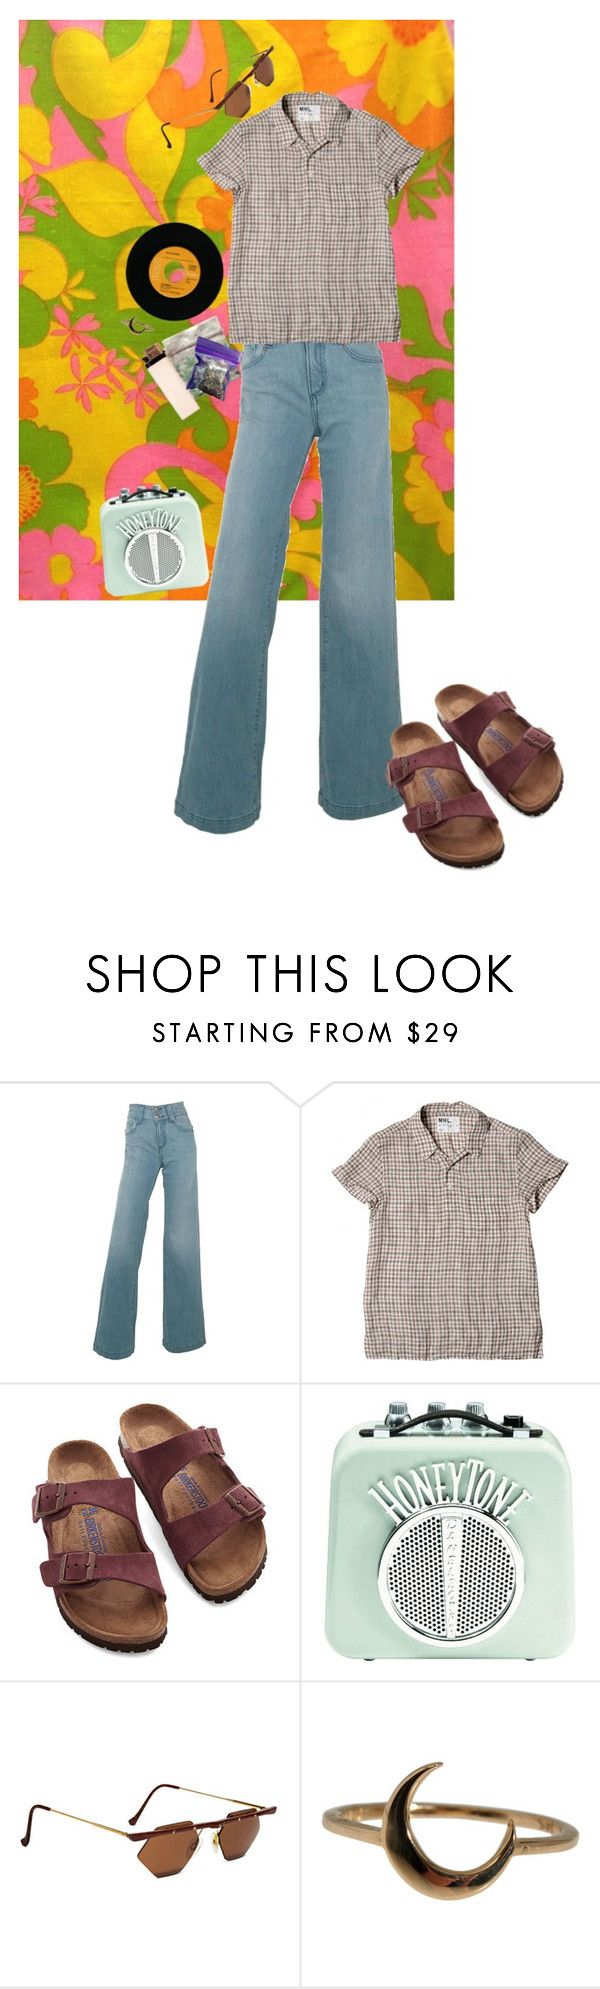 """70's BURN OUT"" by magickofthelema ❤ liked on Polyvore featuring Del Forte, Birkenstock, Lulu Frost, INC International Concepts, vintage, women's clothing, women's fashion, women, female and woman"